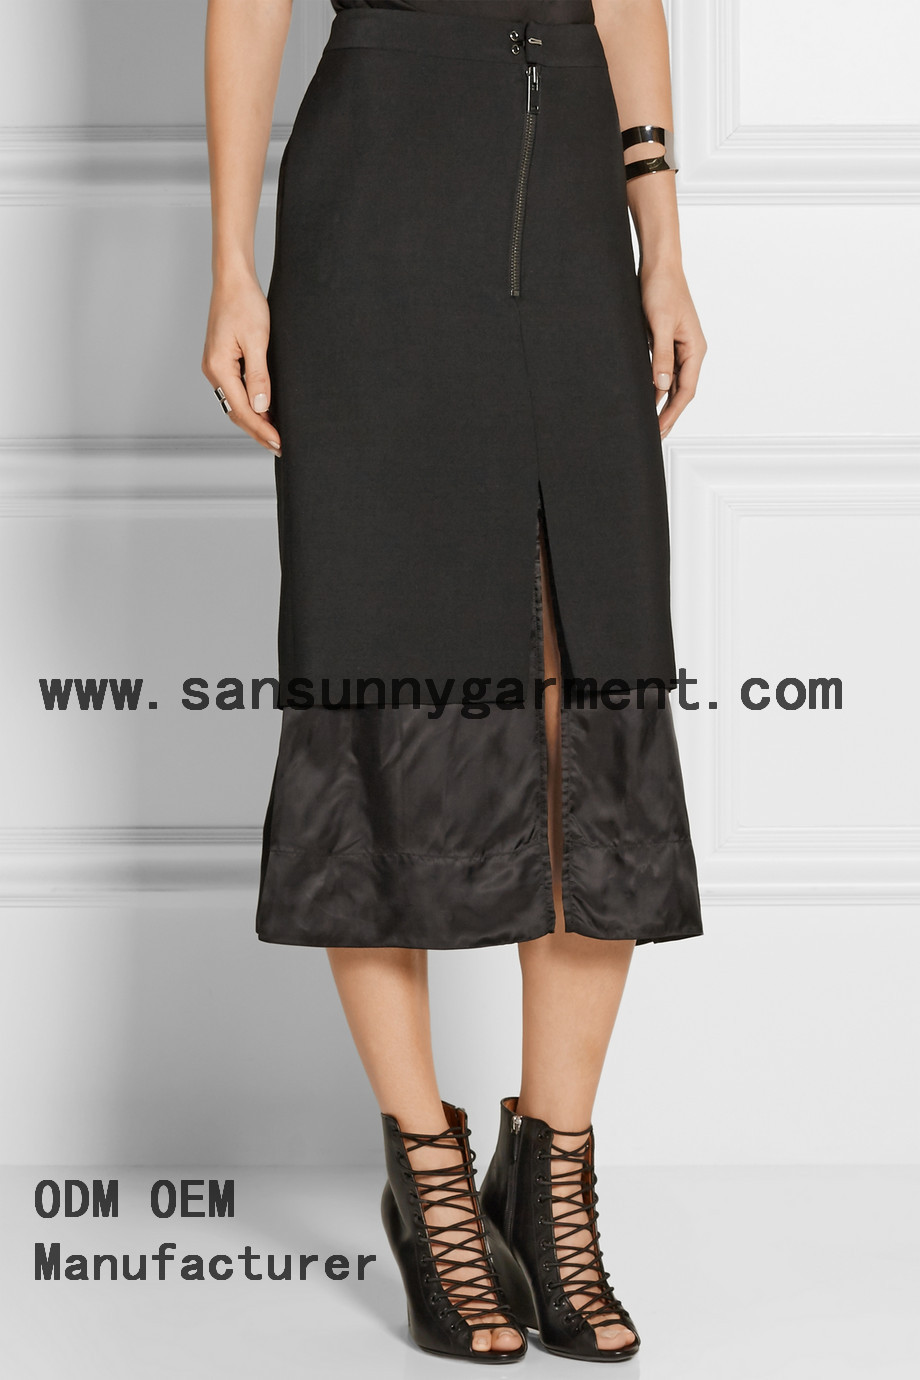 Top Quality Layered Wool blend and Satin Midi Skirt